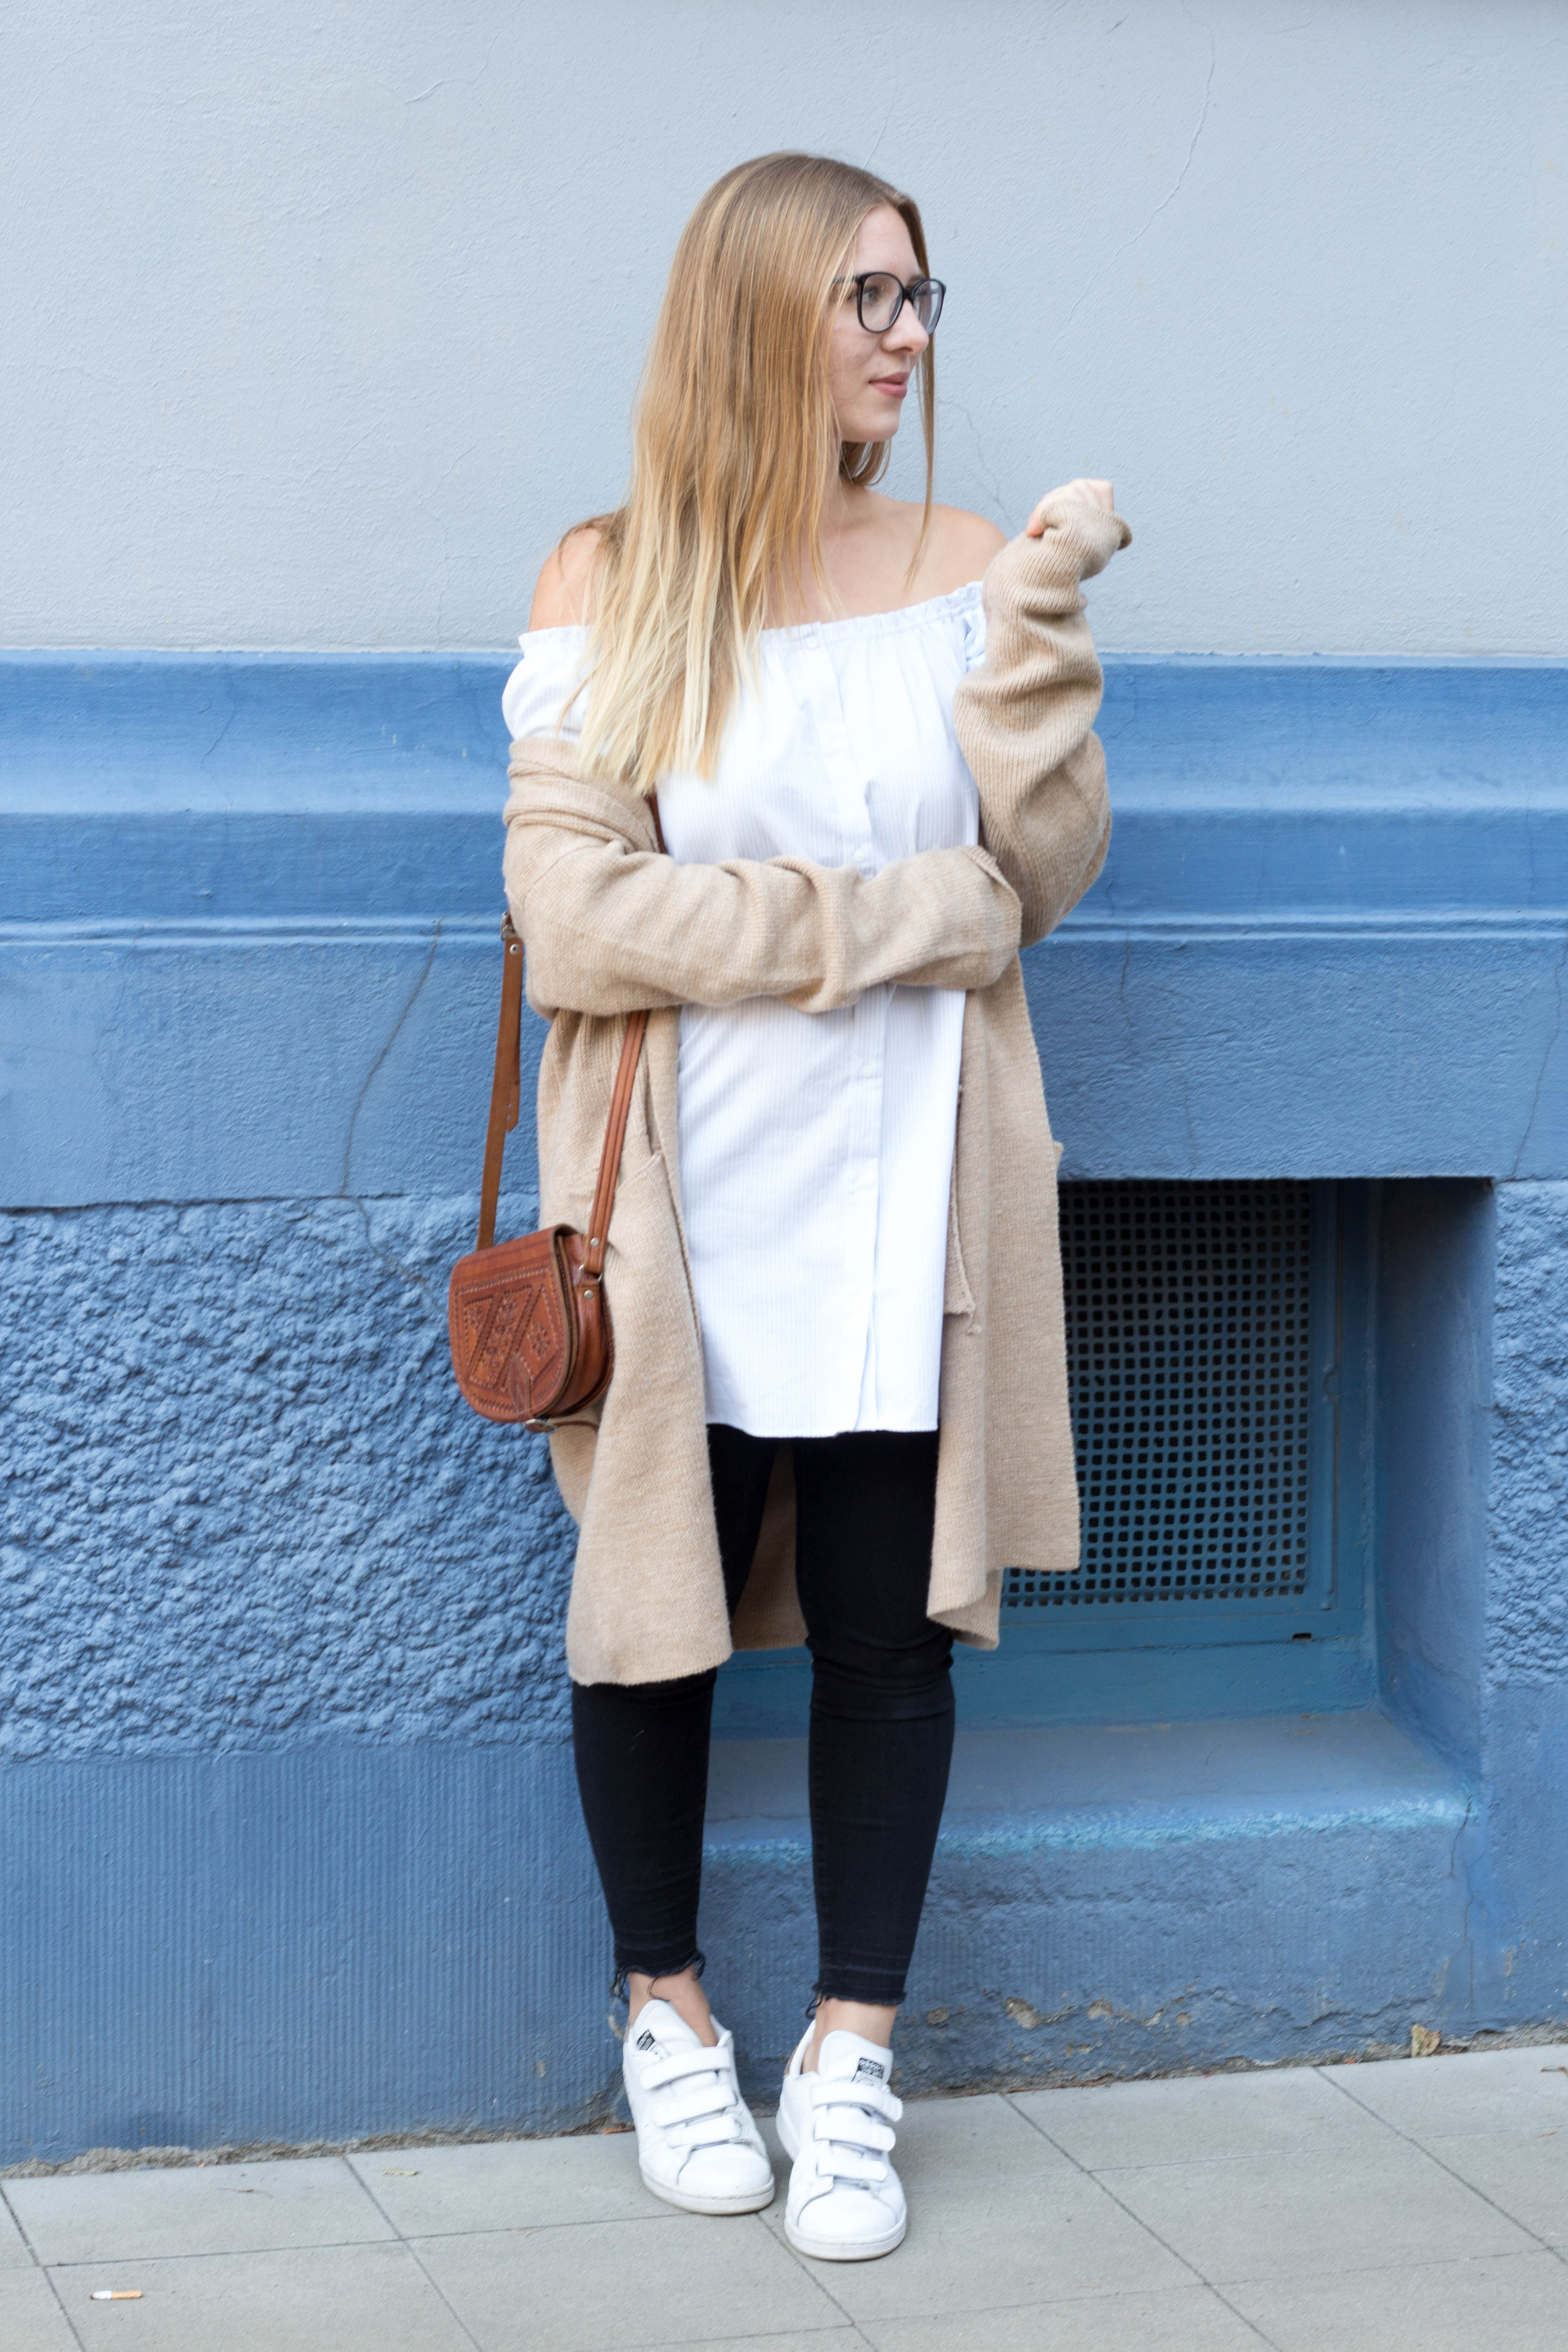 Off Shoulder Kleid Jeans Cardigan Brille Herbst Sneaker Stan Smith Outfit Fashionblog